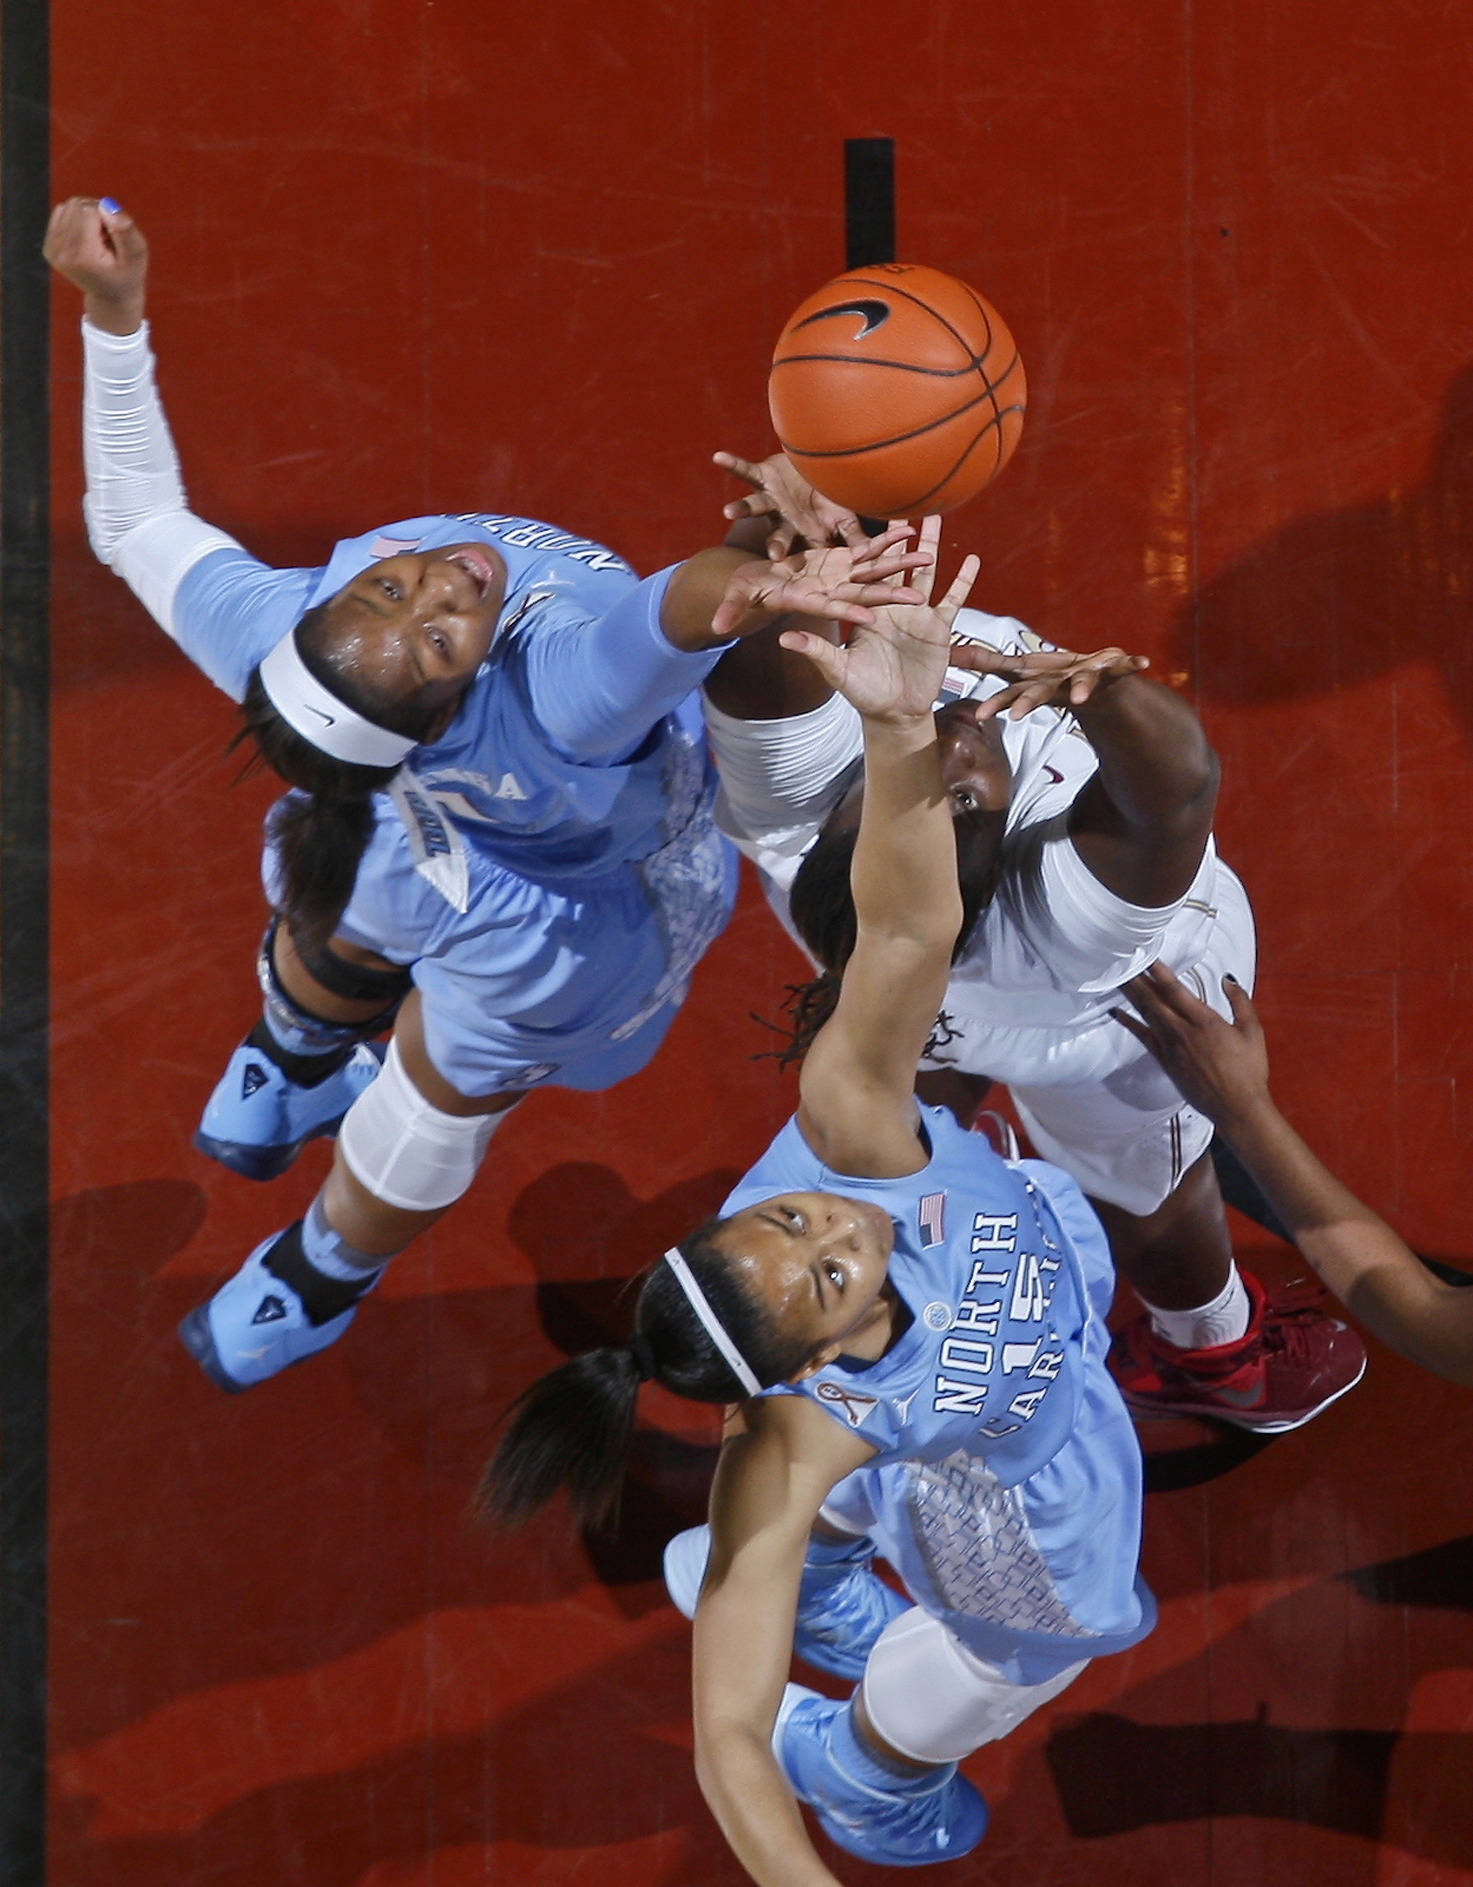 Jan 12, 2014; Tallahassee, FL, USA; North Carolina Tar Heels forward Stephanie Mavunga (1) and guard Allisha Gray (15) battle Florida State Seminoles forward Kai James (0) for a rebound in the first half at the Tucker Center. Mandatory Credit: Phil Sears-USA TODAY Sports